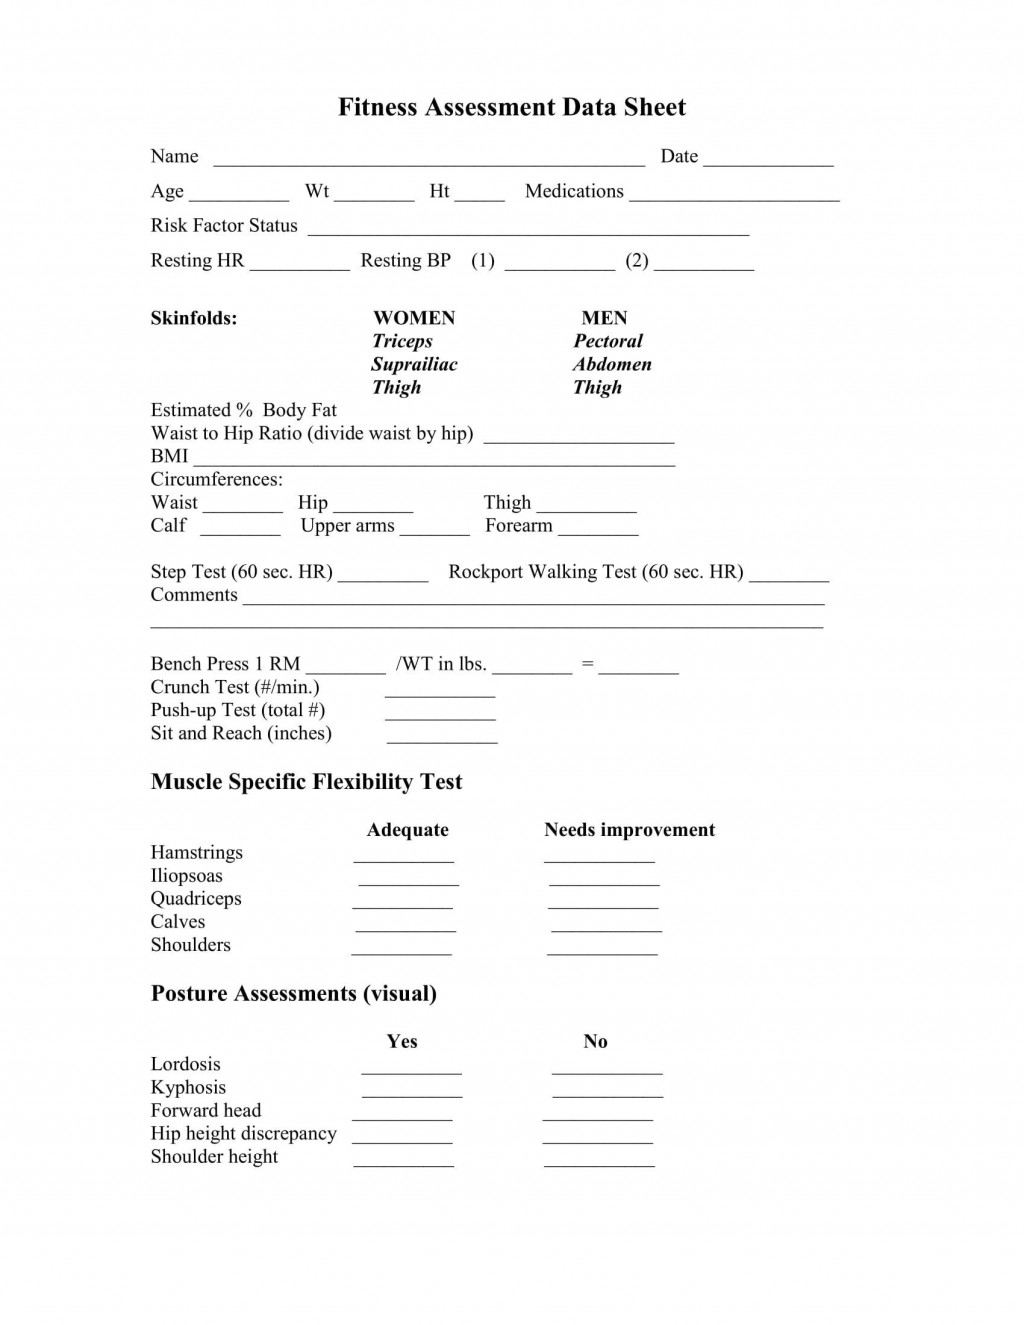 004 Exceptional Medical History Form Template For Personal Training Photo Large